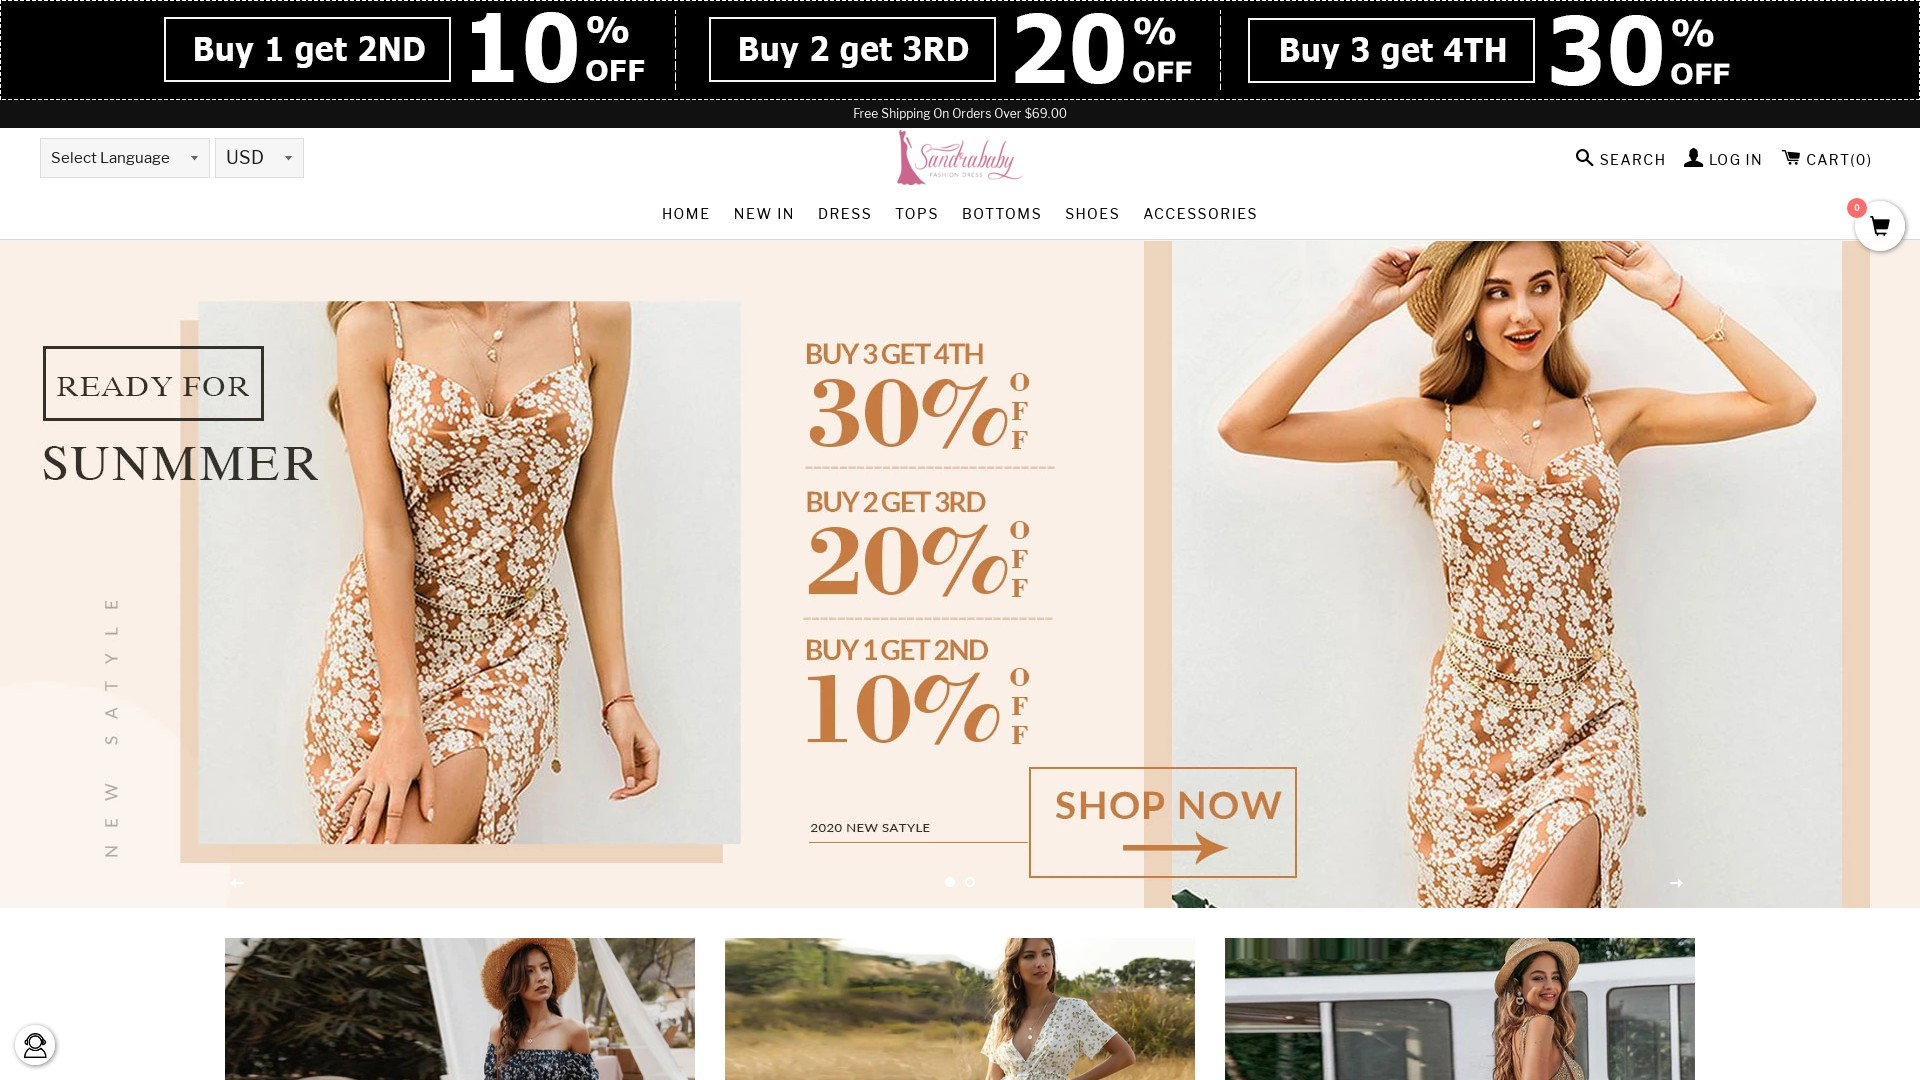 Is Sandrababy.com a Scam? Review of the Online Store